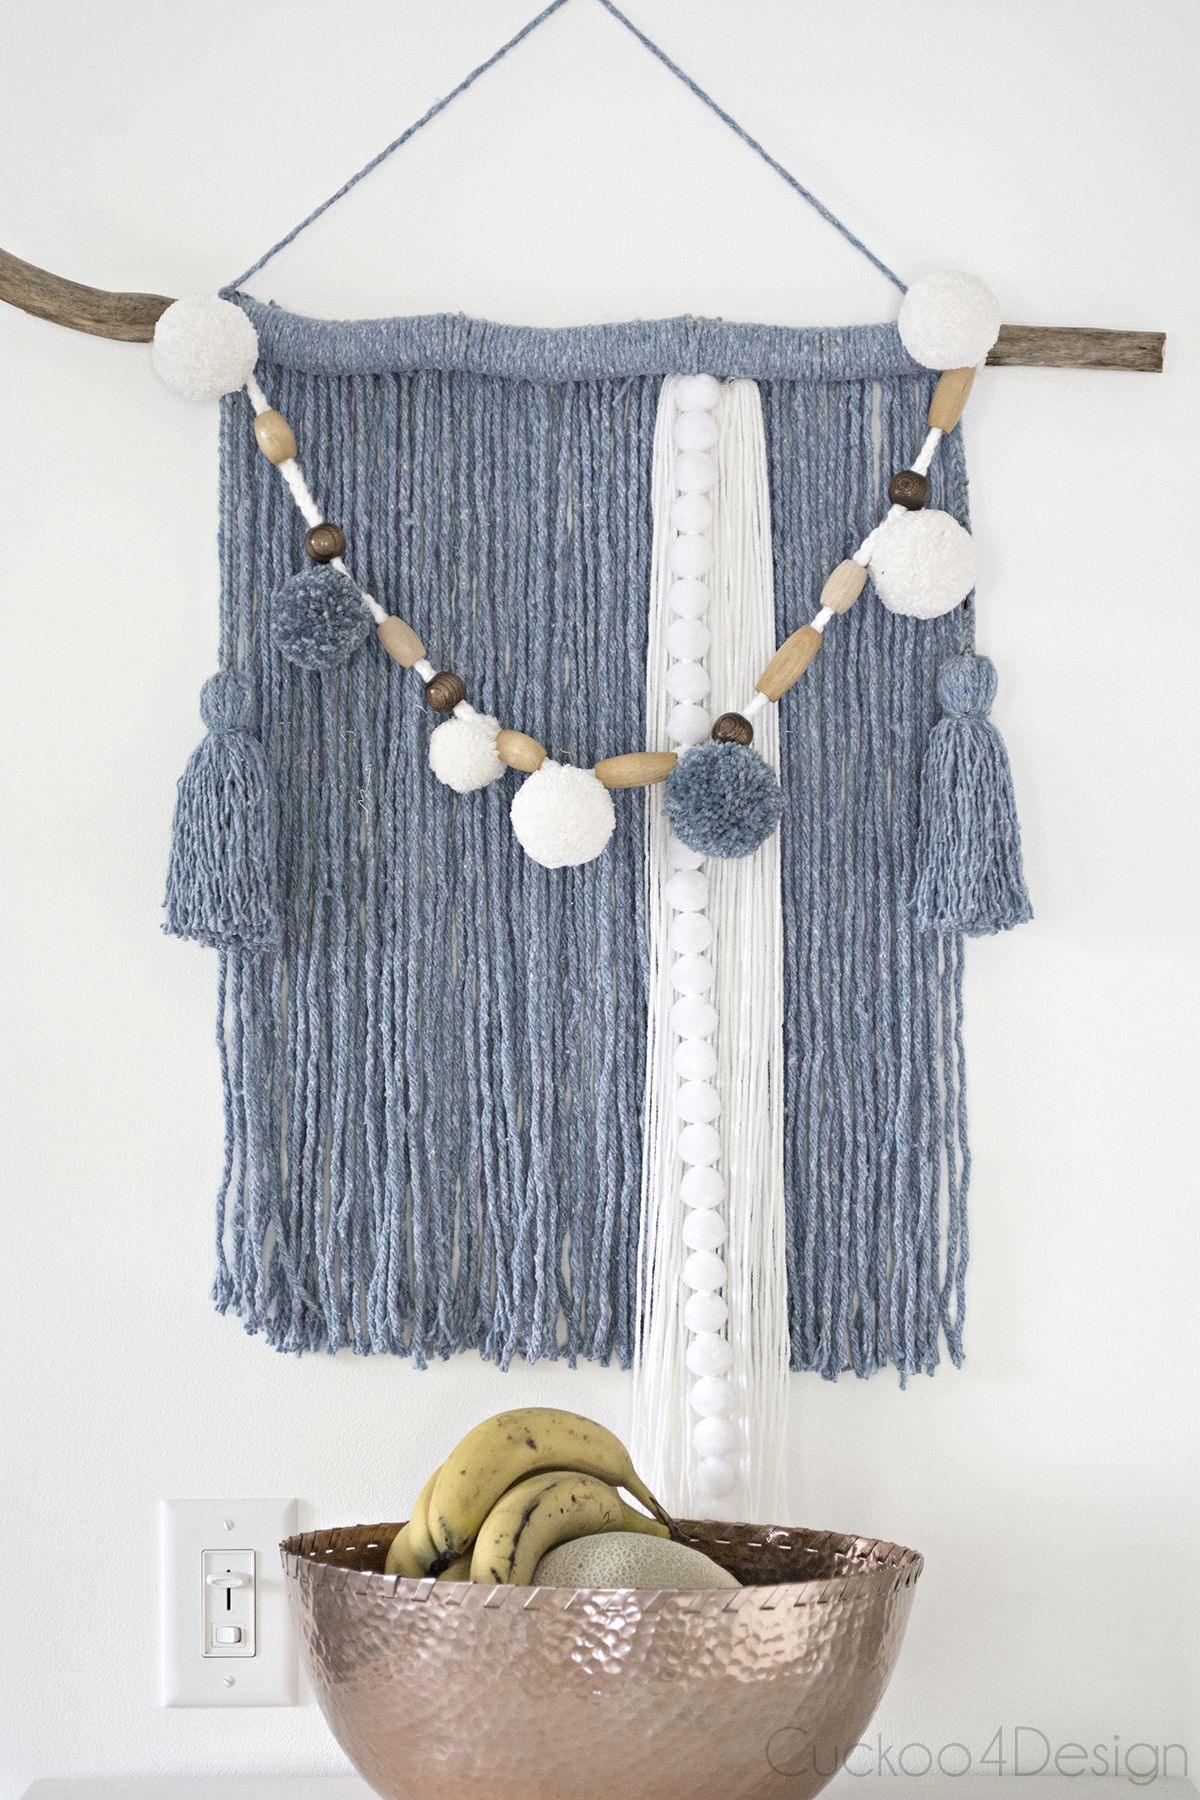 Making wall weavings and yarn art can be super easy and I'm showing you how to make a Mop head yarn wall hanging with some affordable supplies.